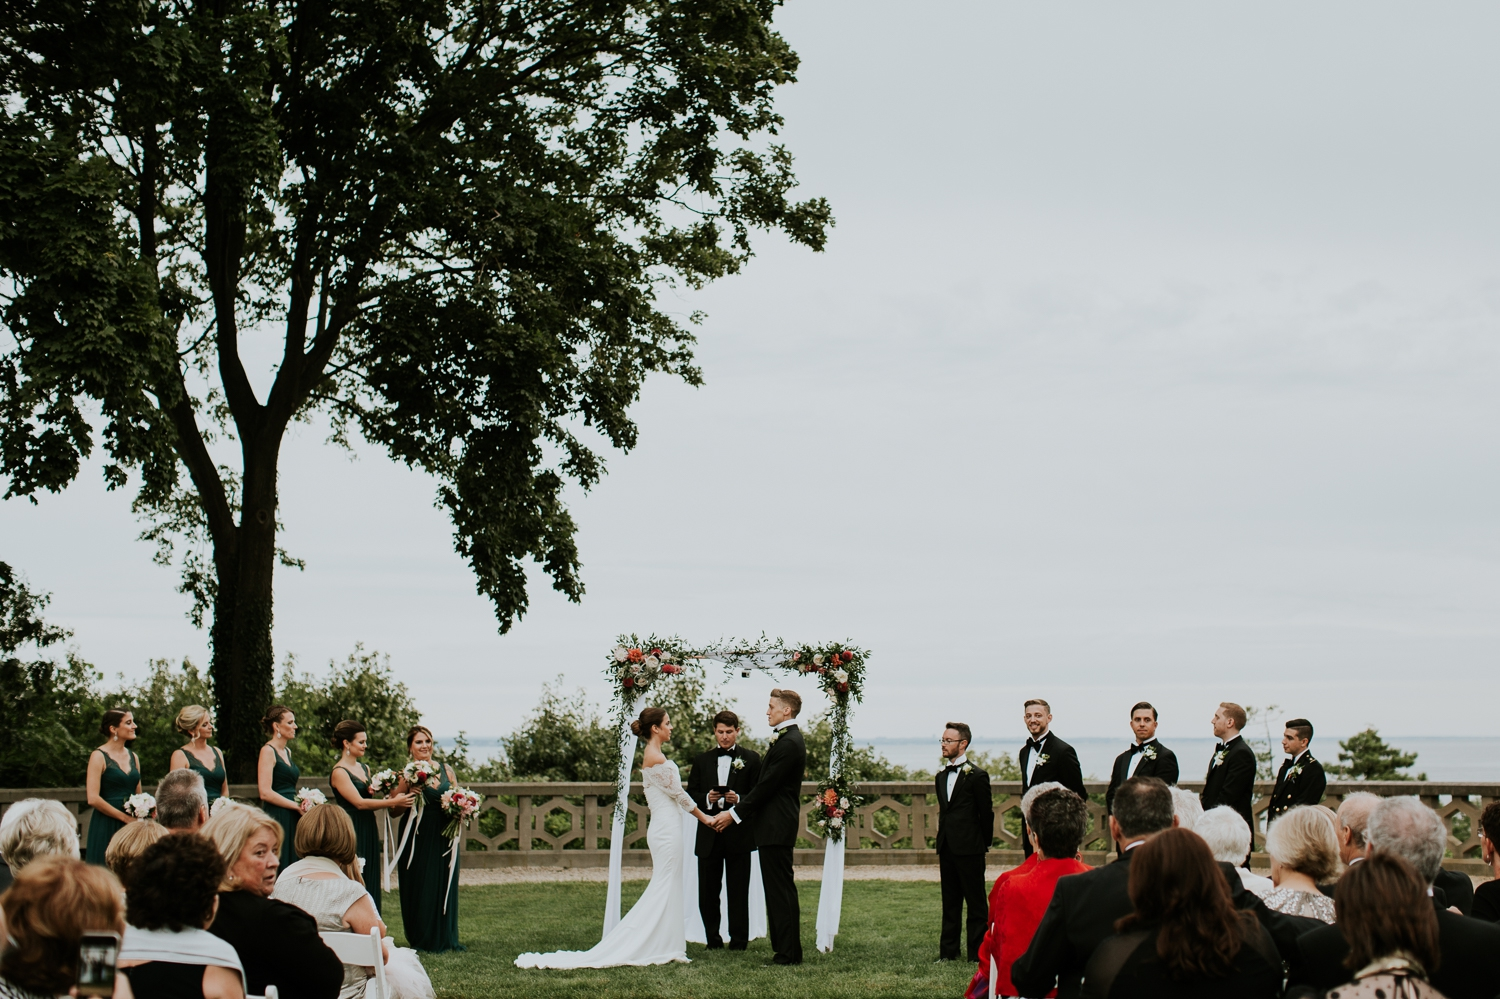 hempstead_house_new_york_wedding_photographer 69.jpg